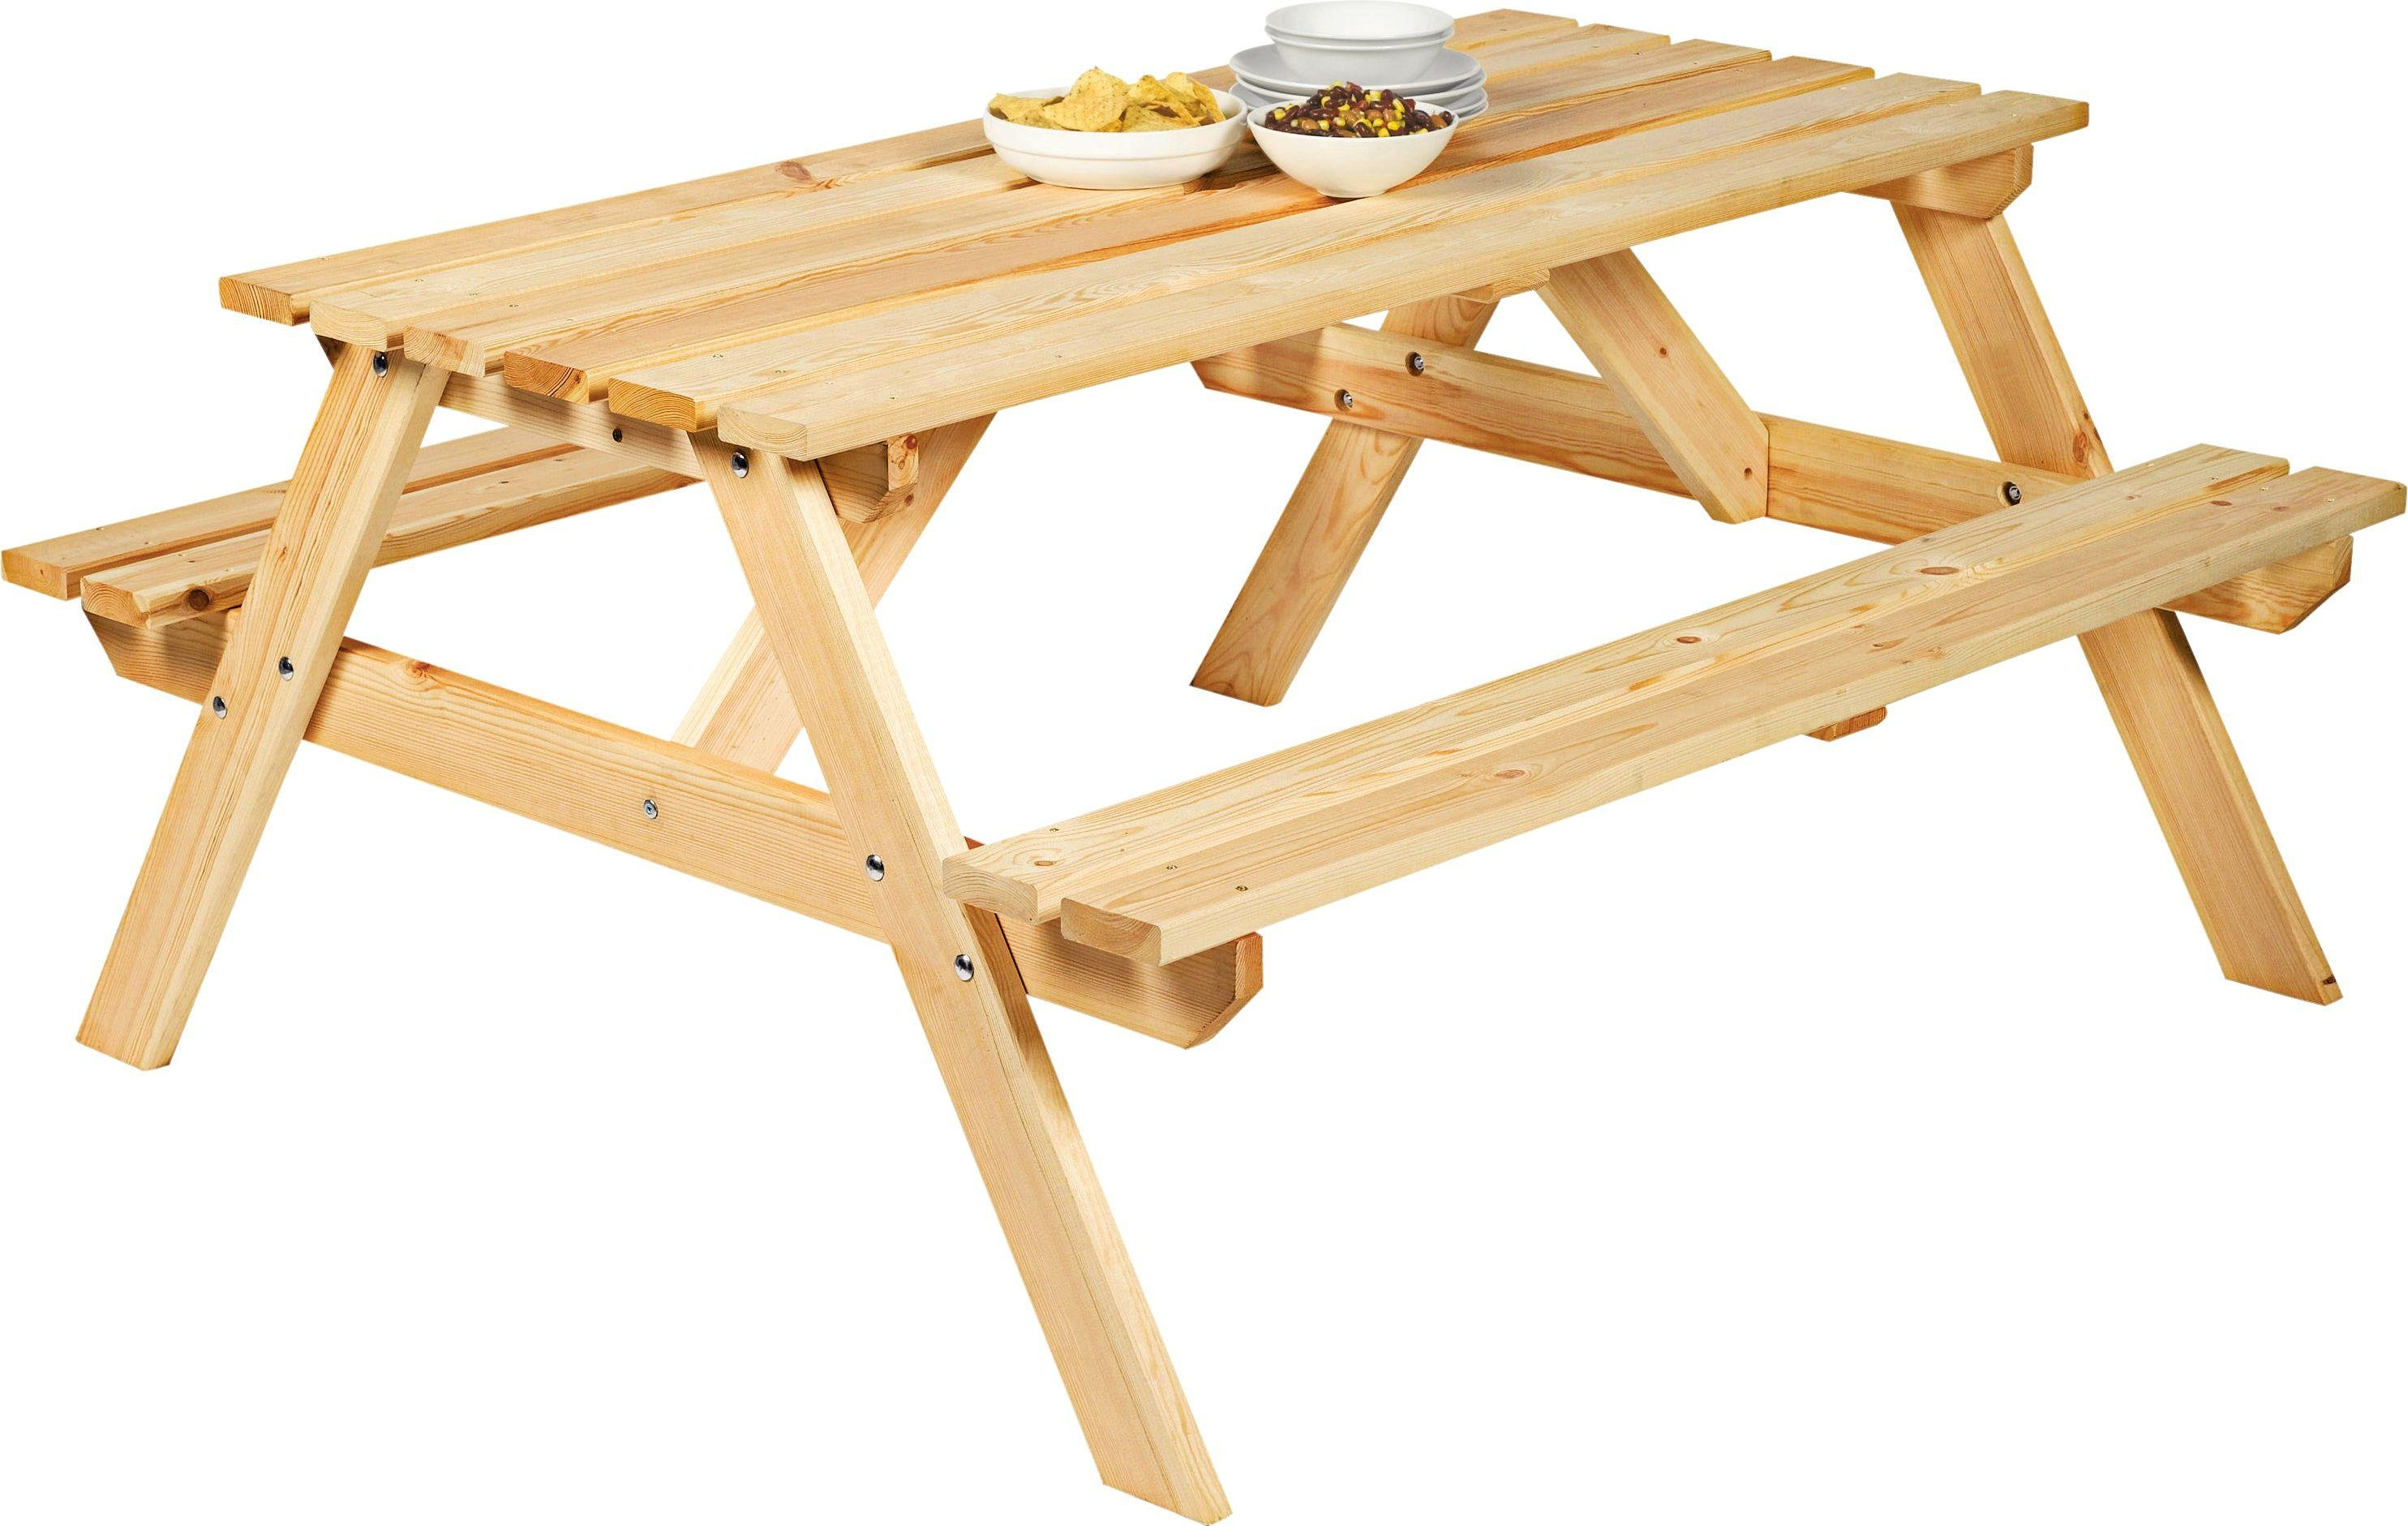 Argos Home Wooden 4 Seater Picnic Bench650/4225